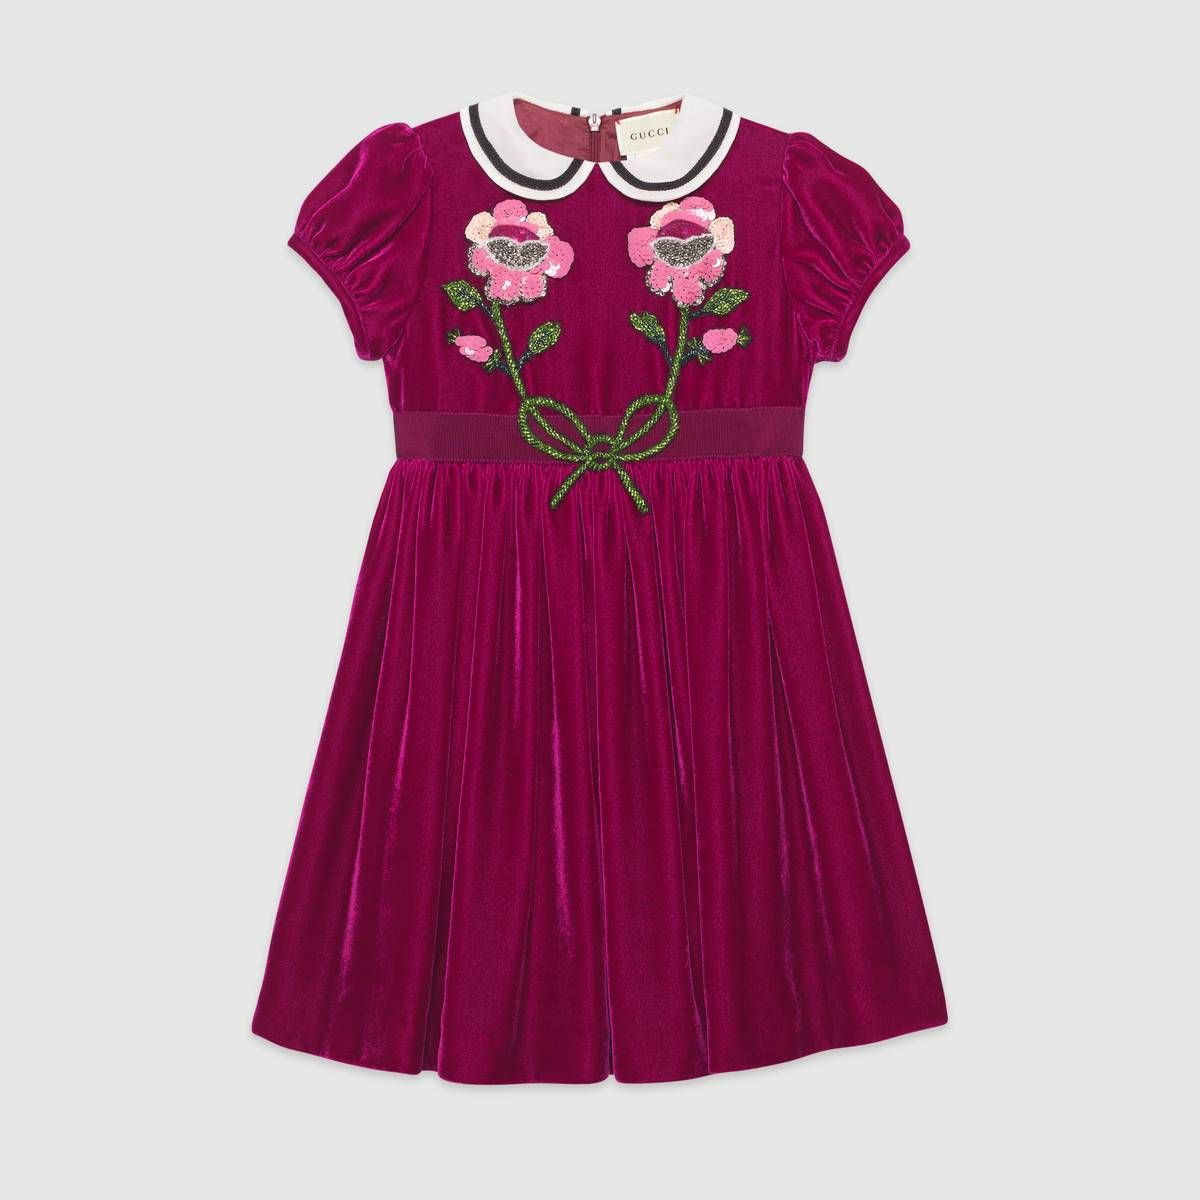 9483d285120f1 Children's velvet dress with sequin embroidery | Beauty and the ...